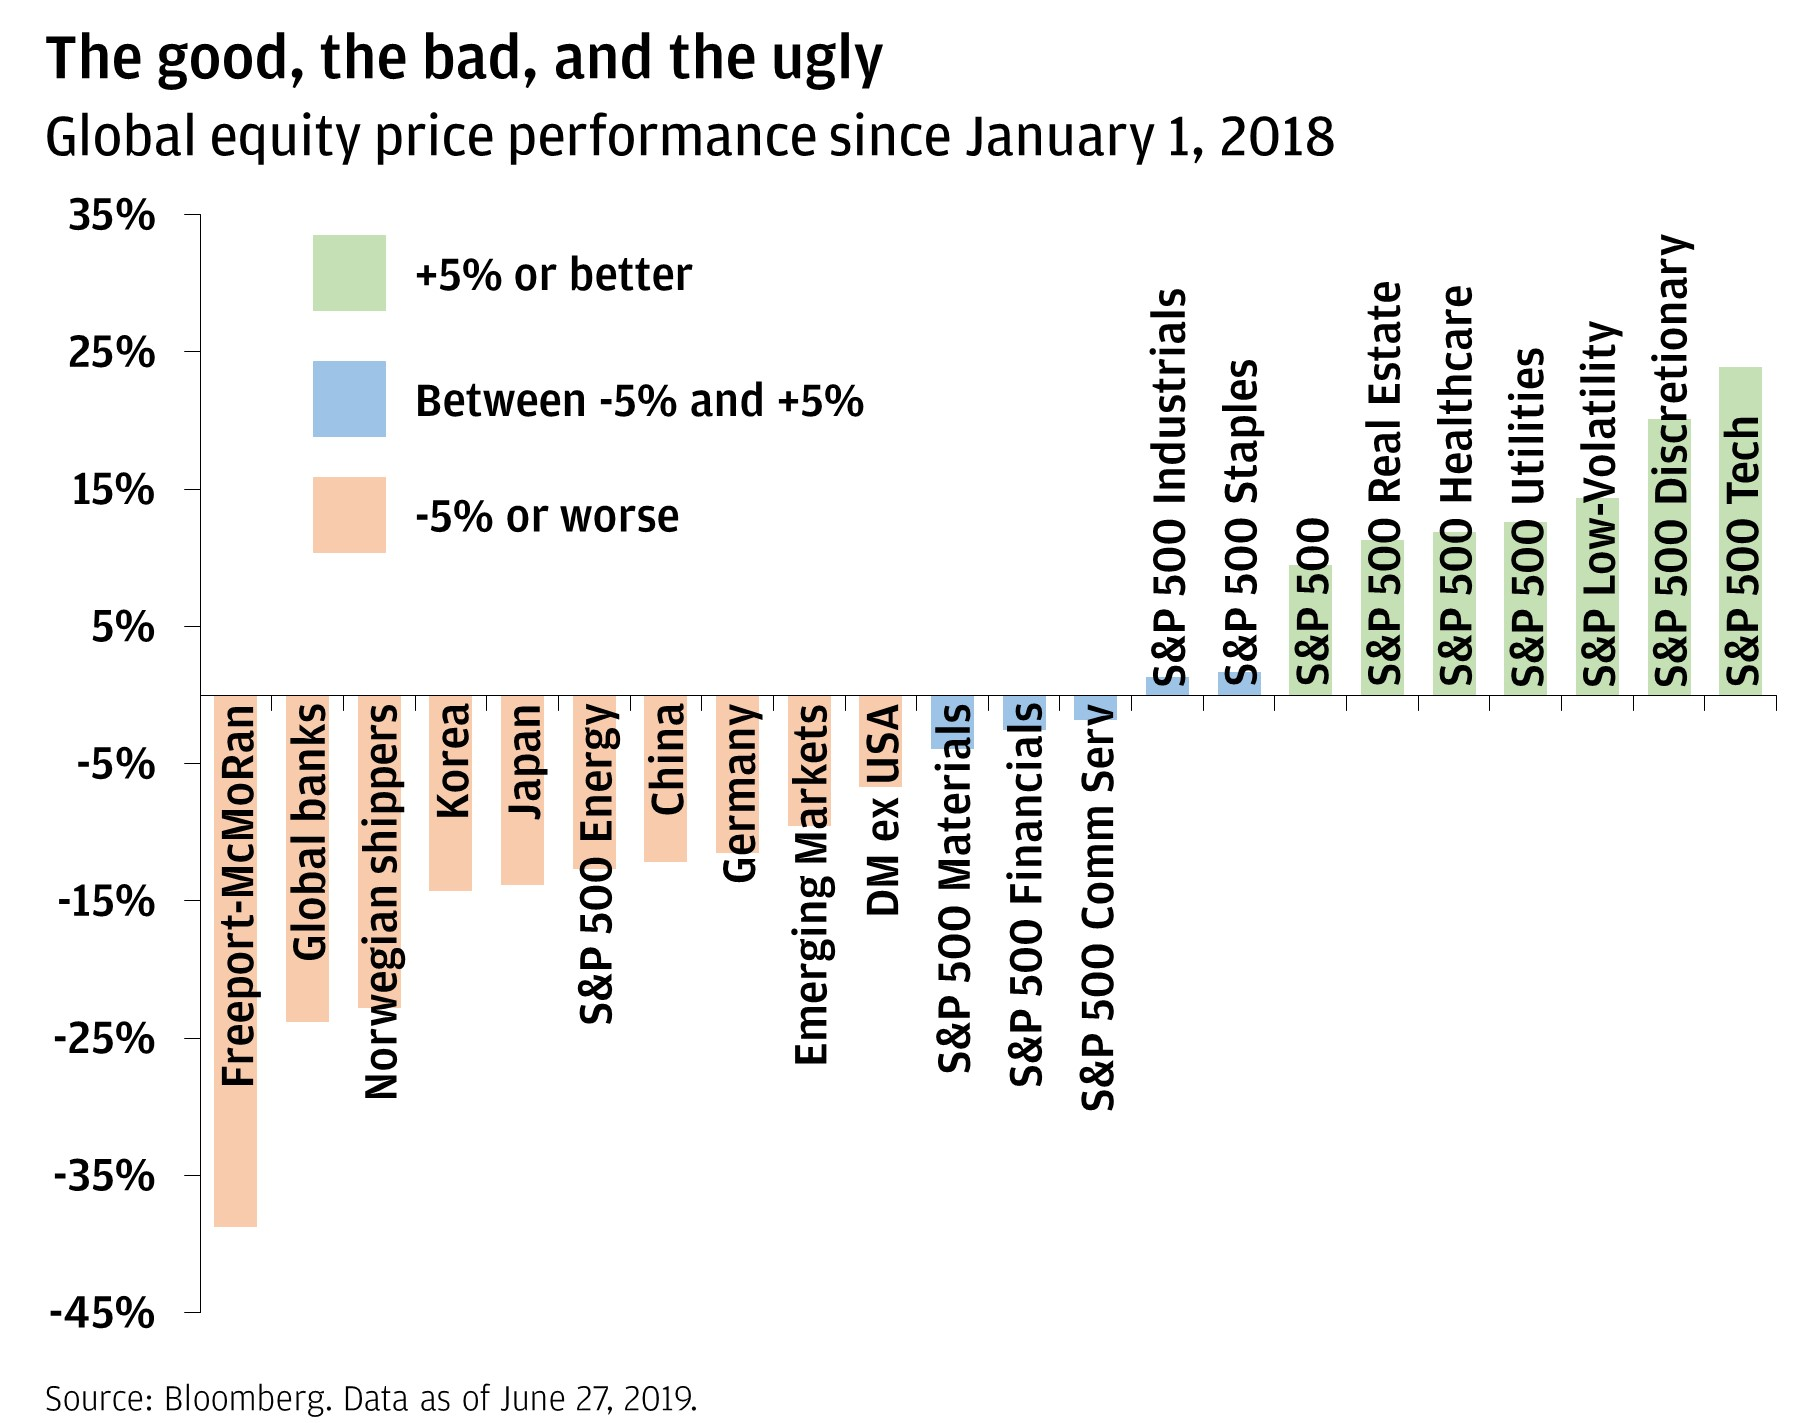 The good, the bad, and the ugly Chart showing global equity price performance from January 2018 through June 2019, comparing those 15% or worse (e.g., global banks, Korea, Japan, etc.) to those between -5% and +5% (e.g., S&P 500 Materials, Financials, Staples, etc.) and those +5% or better (e.g., S&P 500 Real Estate, Healthcare, Tech, etc.).